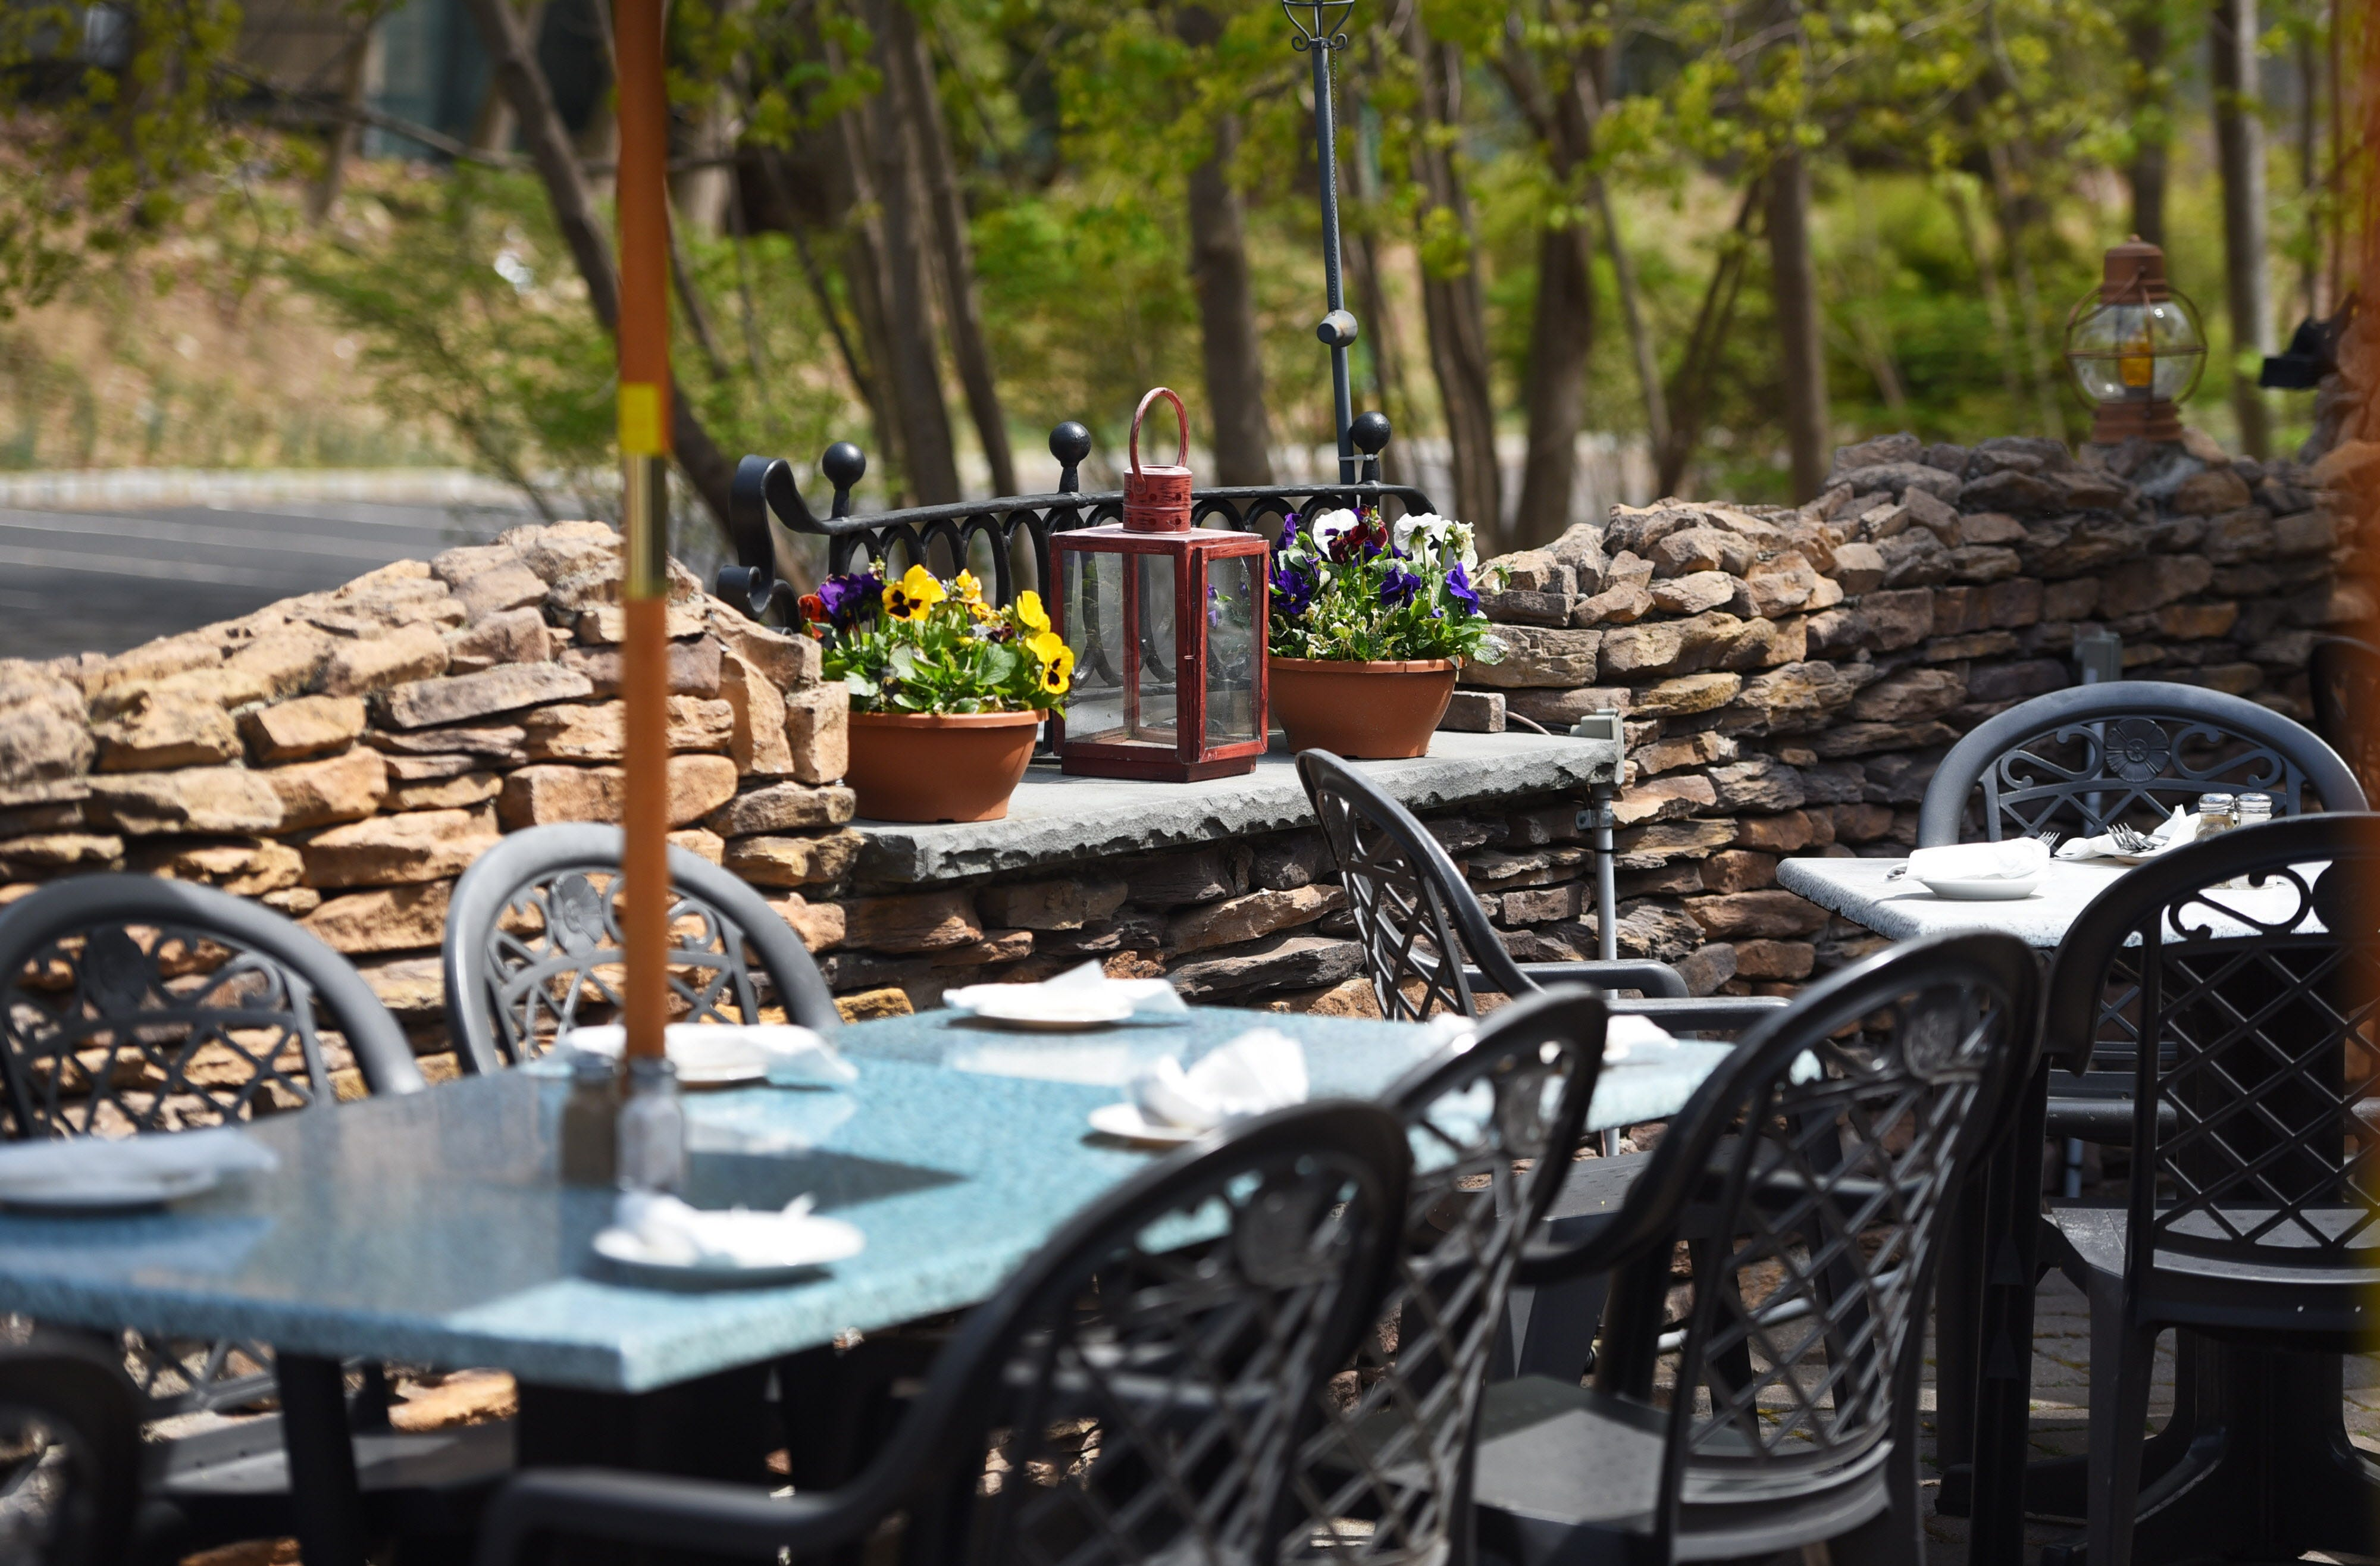 He Outdoor Patio At Hearth U0026 Tap In Montvale,